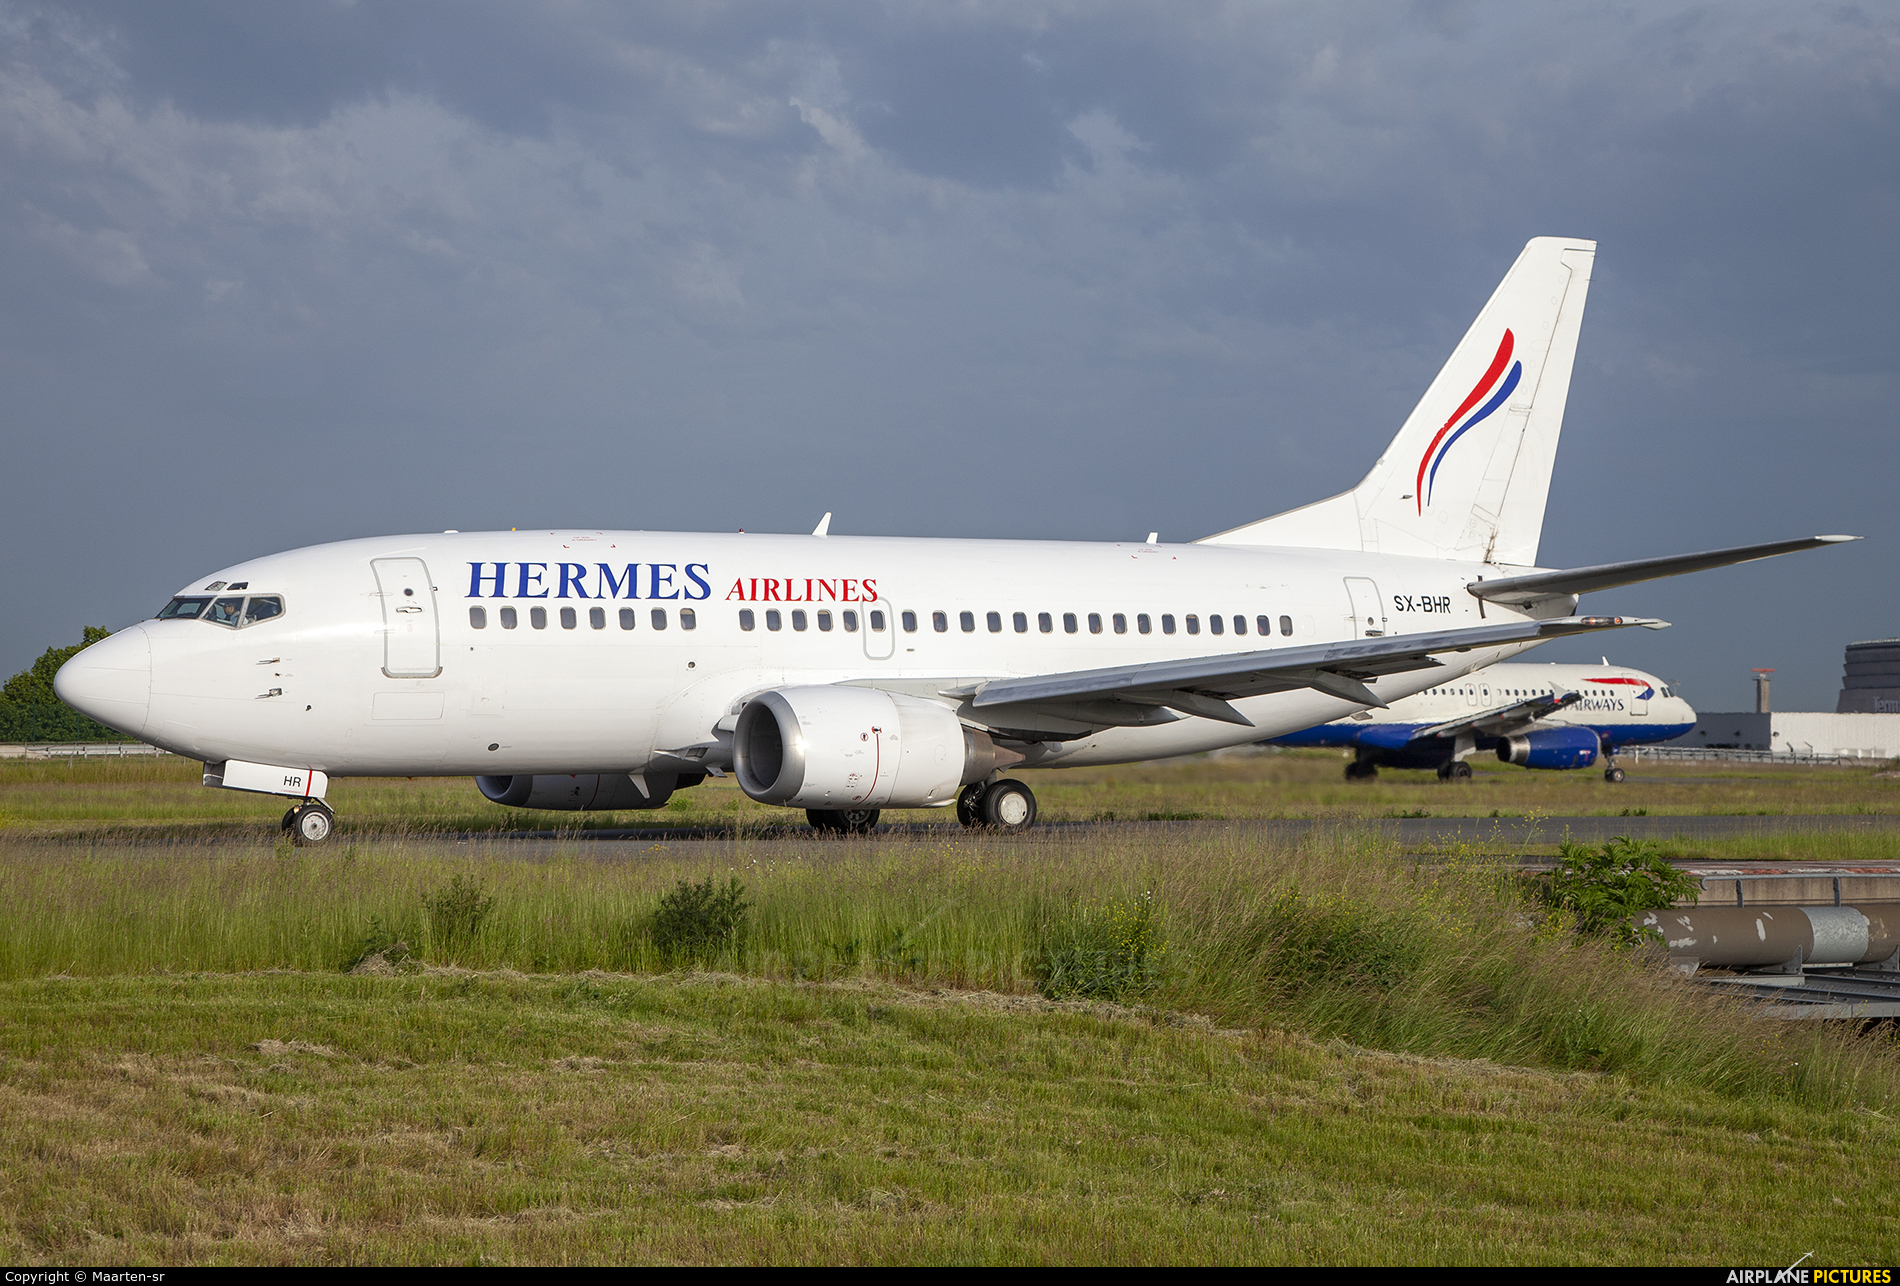 Hermes Airlines SX-BHR aircraft at Paris - Charles de Gaulle